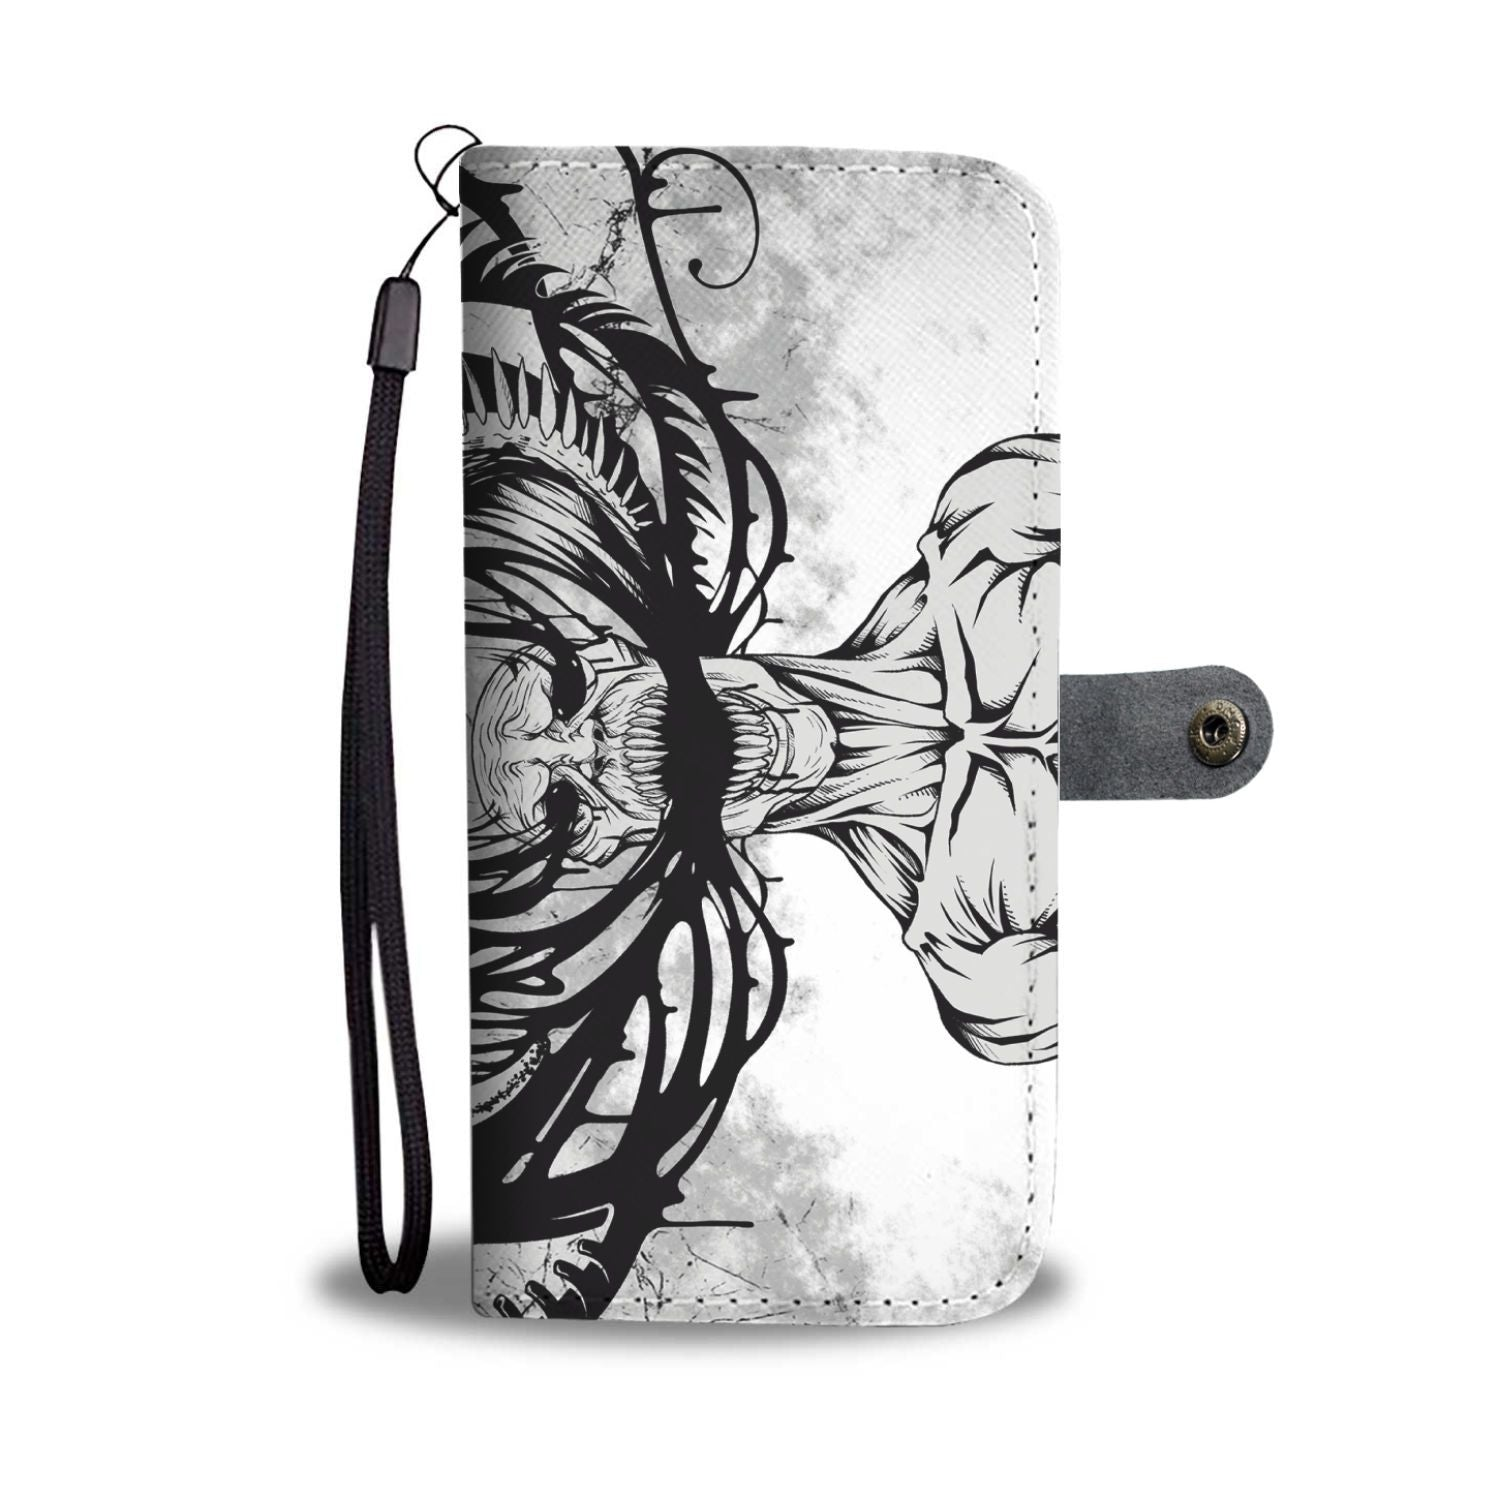 Downbeat Skull Wallet Phone Case-Wallet Case-wc-fulfillment-SKULLZOPHRENIA